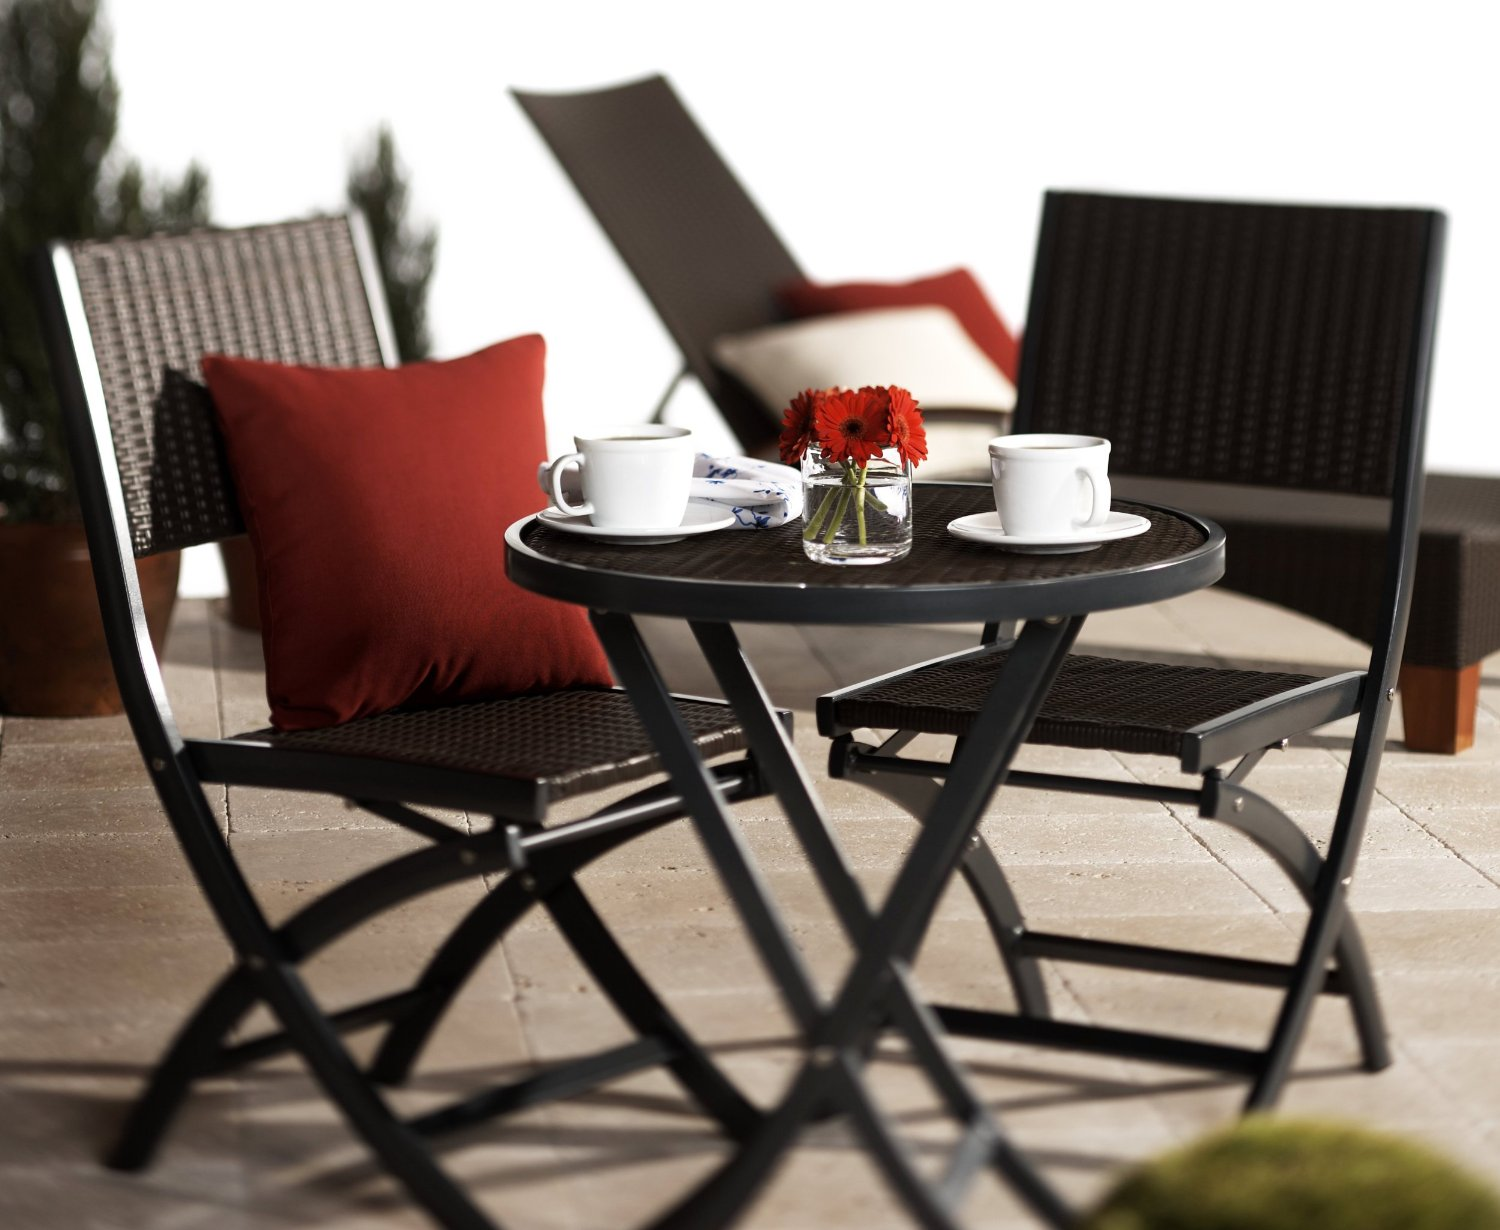 strathwood ritta all weather wicker 3 piece bistro set - Garden Furniture 3 Piece